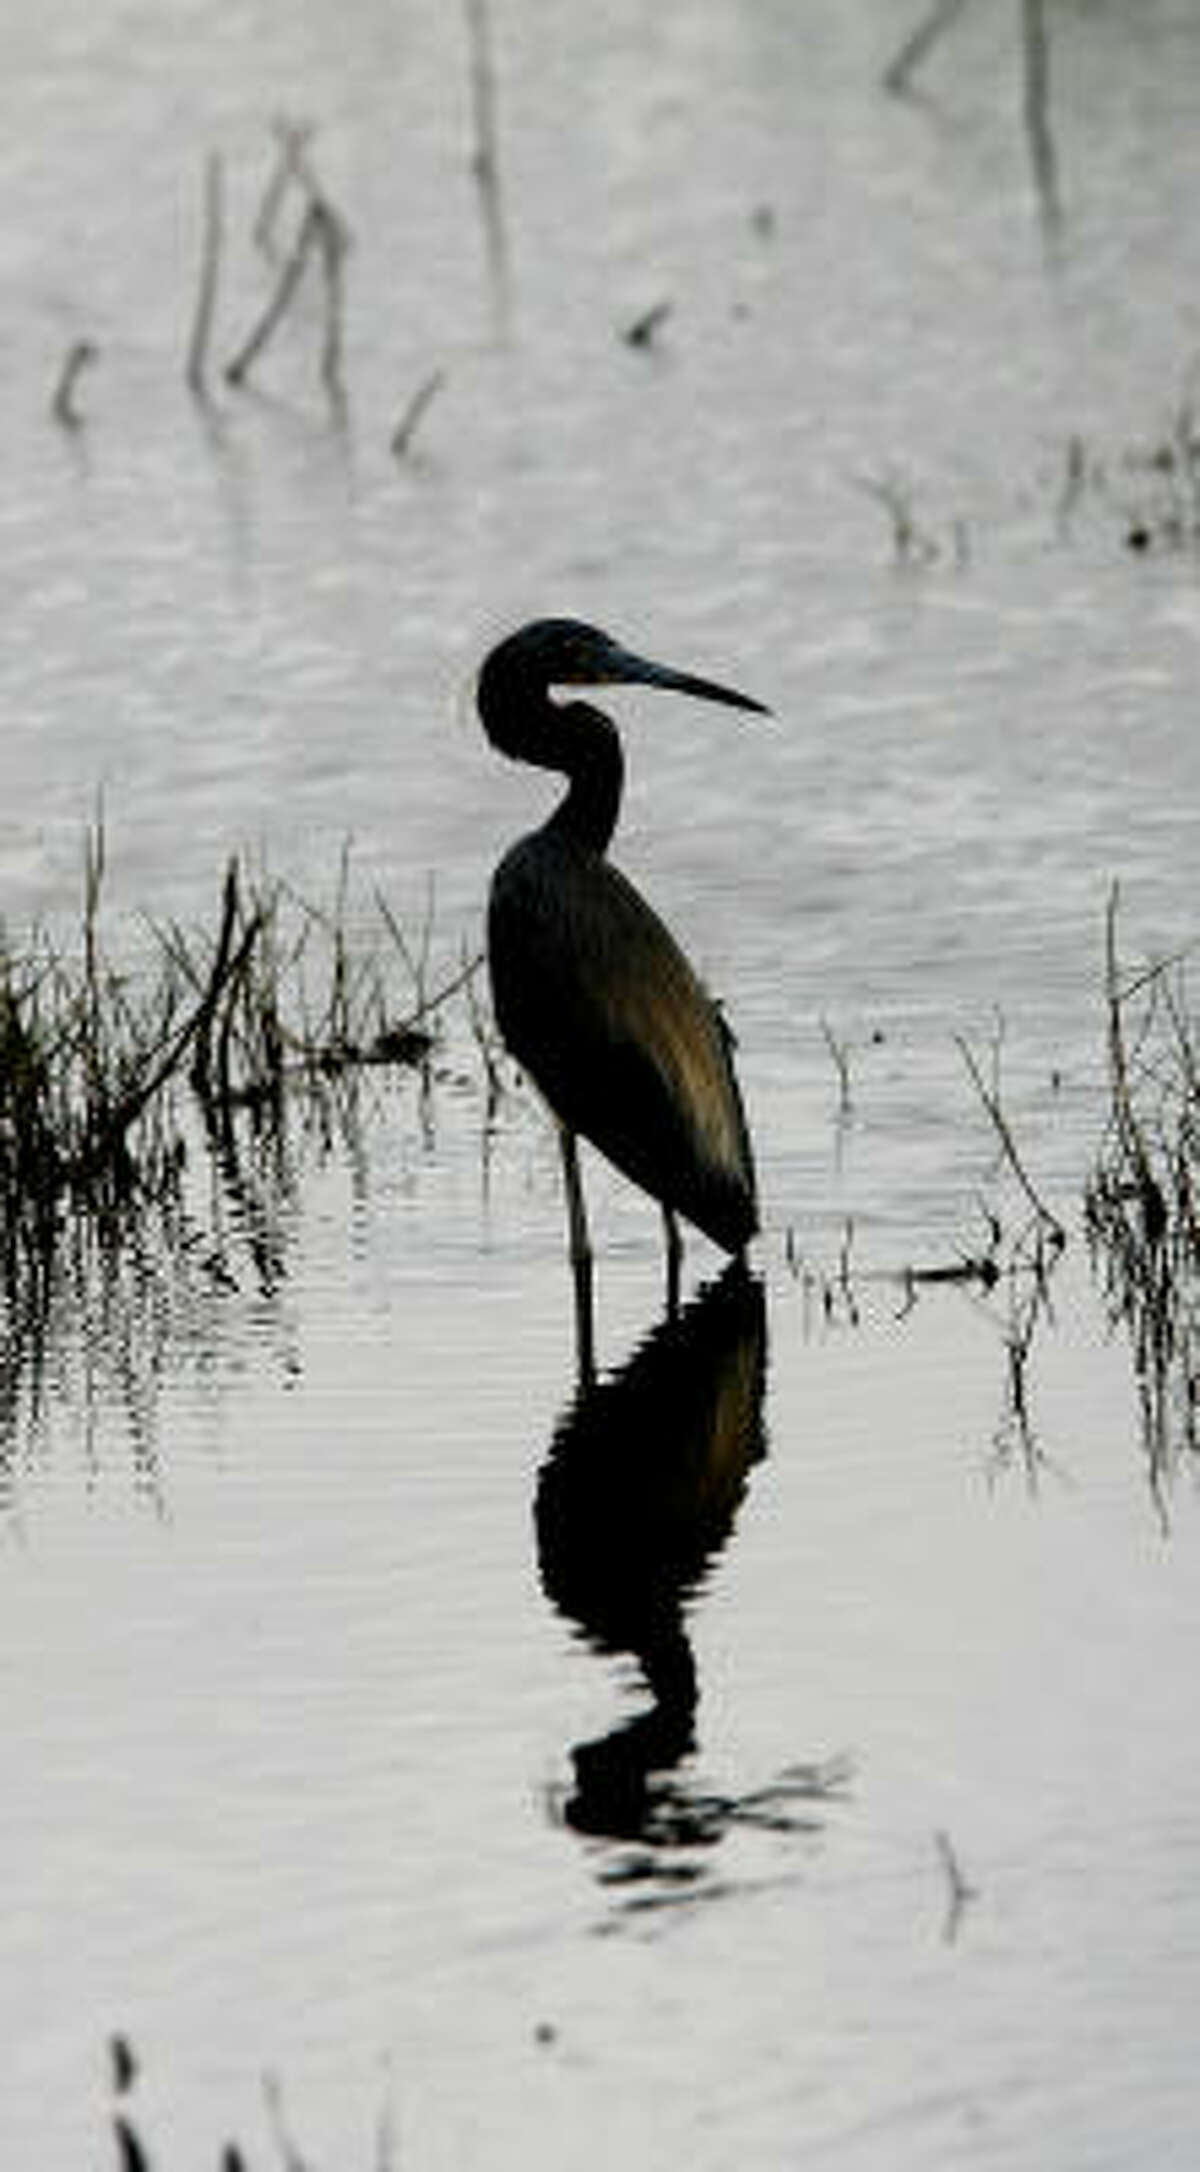 In a scene captured in 2008 at Anahuac National Refuge, a tricolored heron pauses in its search for food.